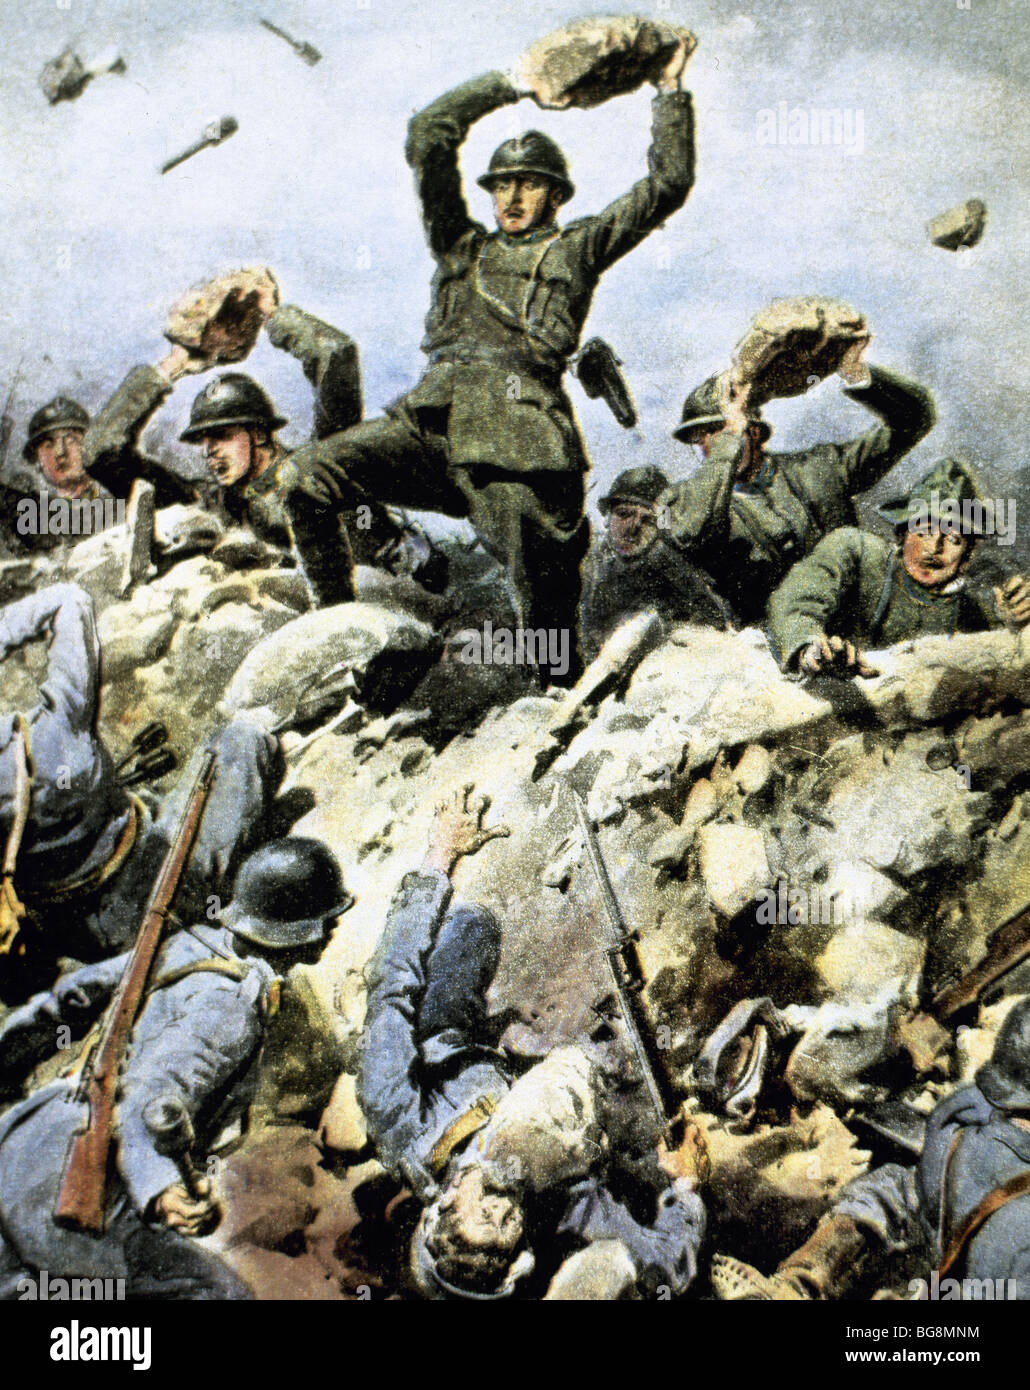 World War I (1914-1918). Italian troops defending their positions against the enemy using stones. 1917. - Stock Image